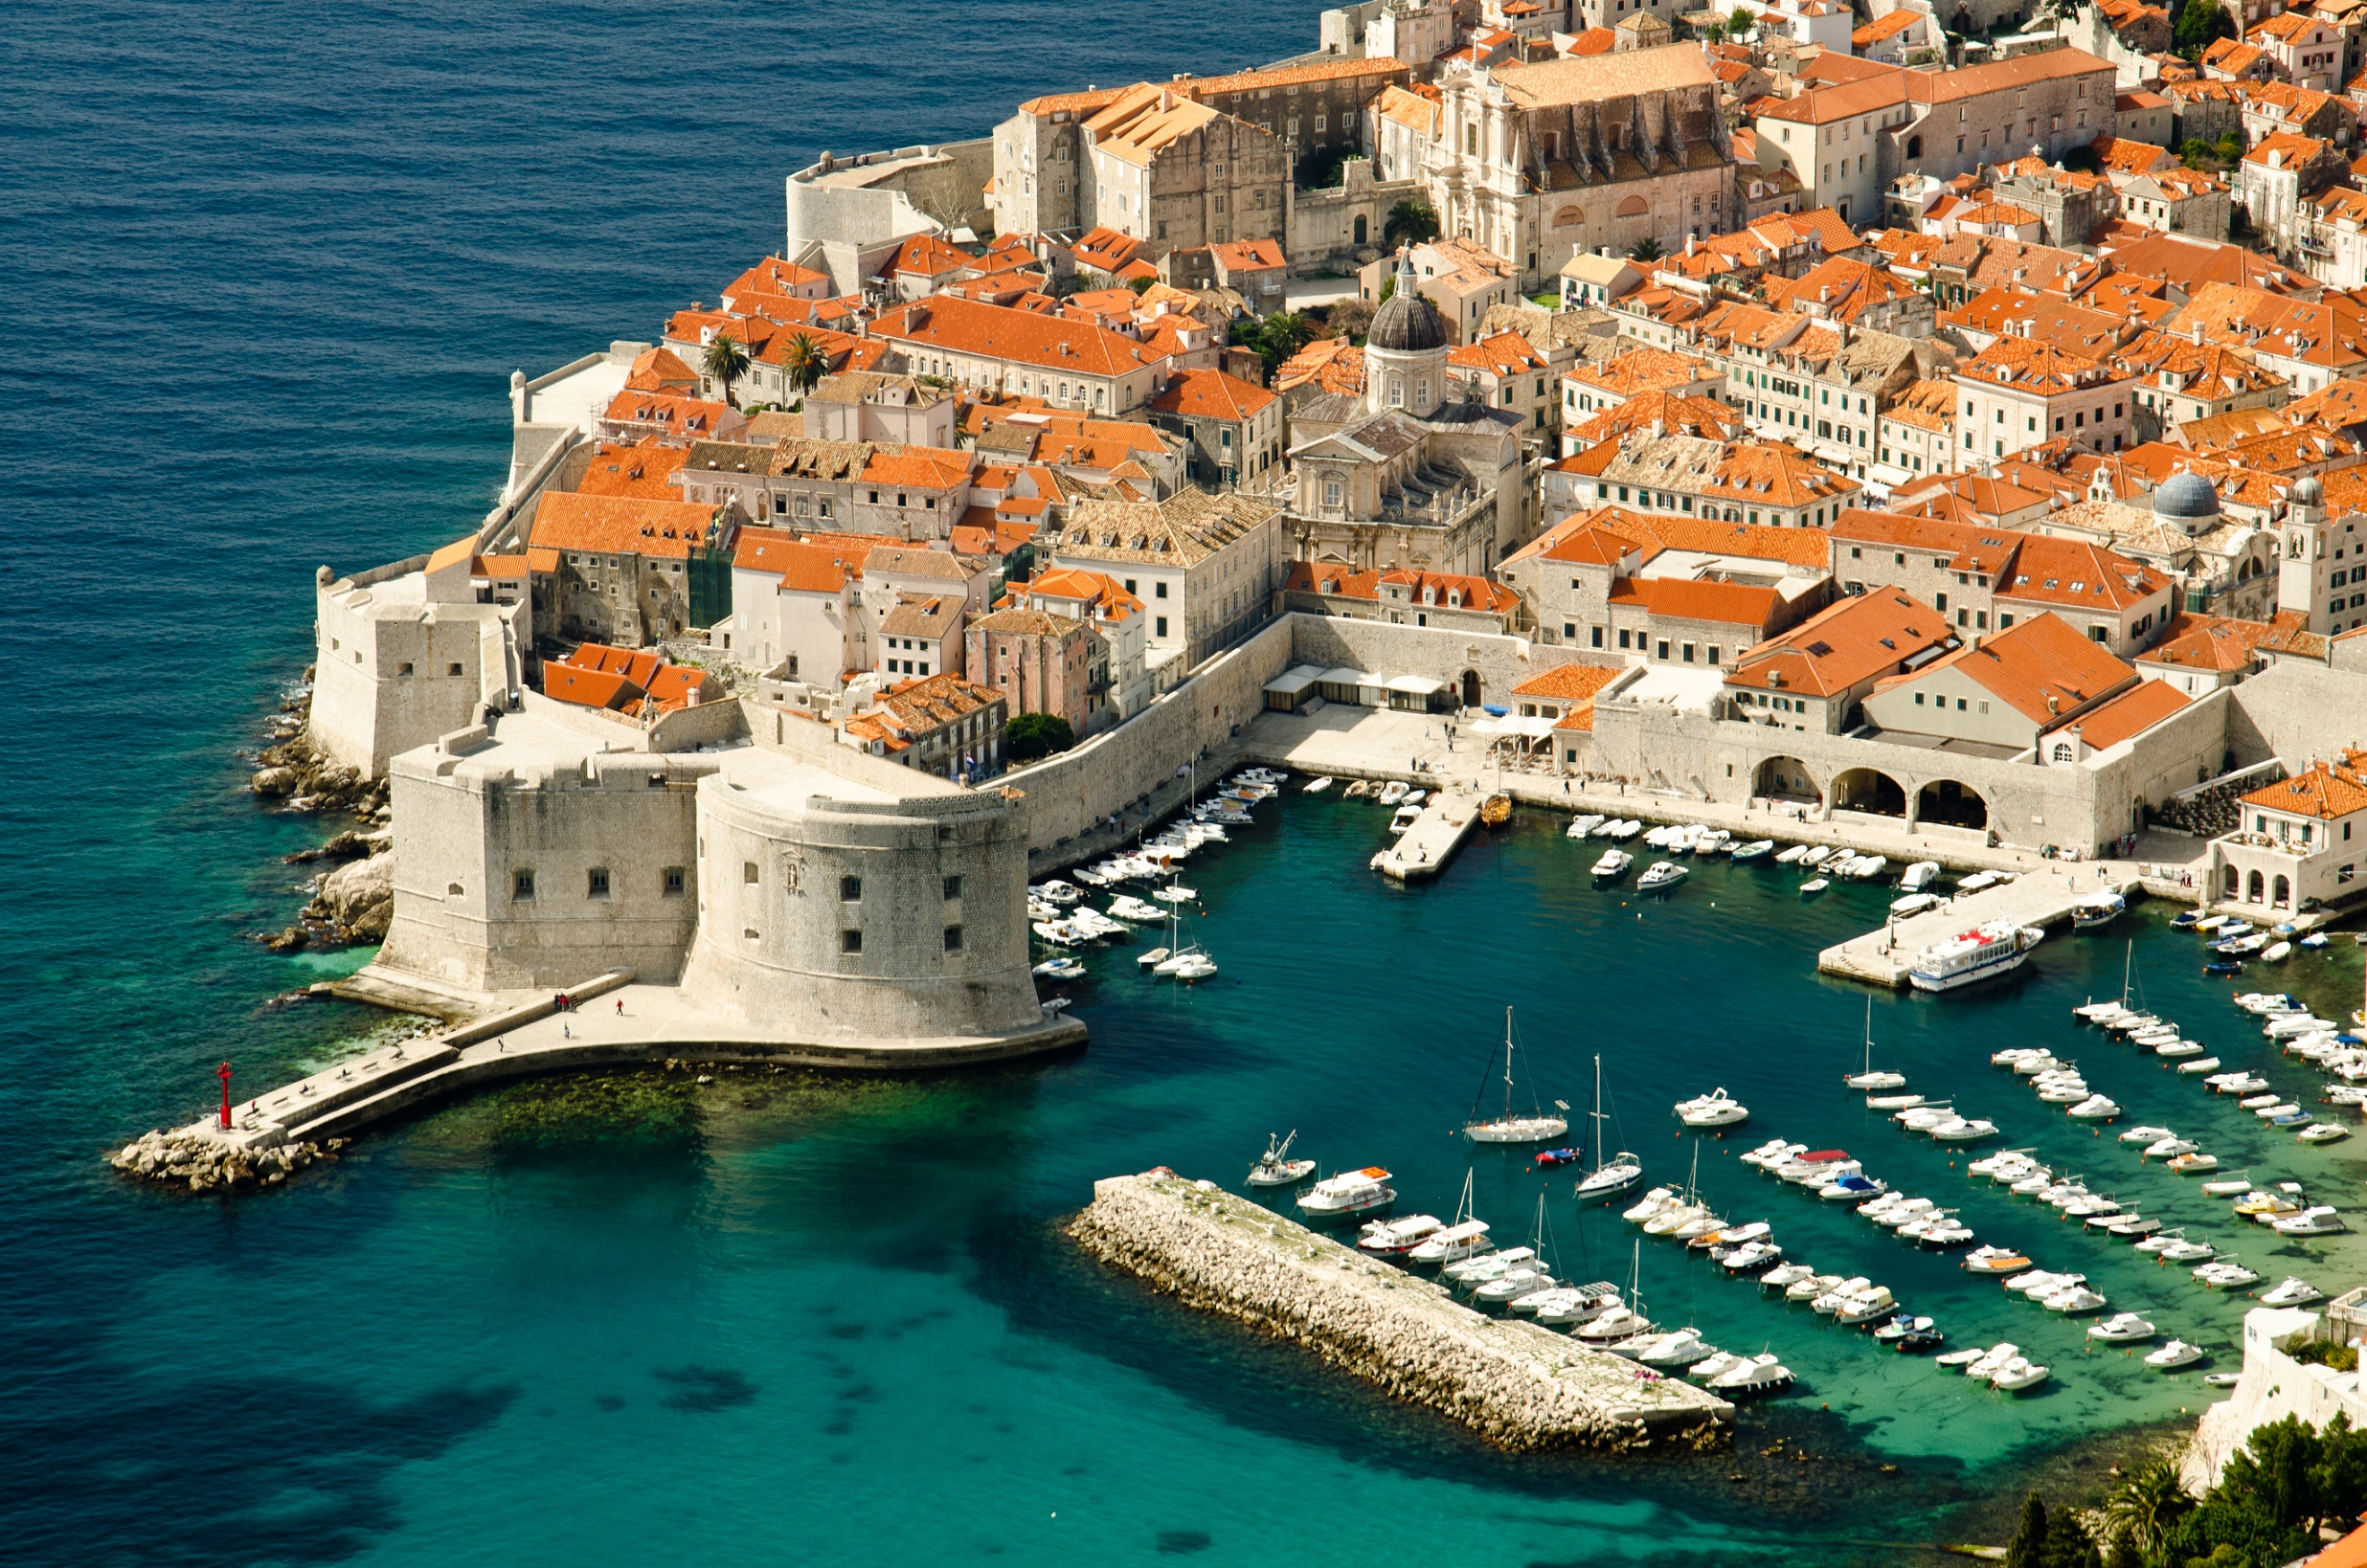 Dubrovnik-croatia-optimalrentals-villas-yachts-apartments-booking